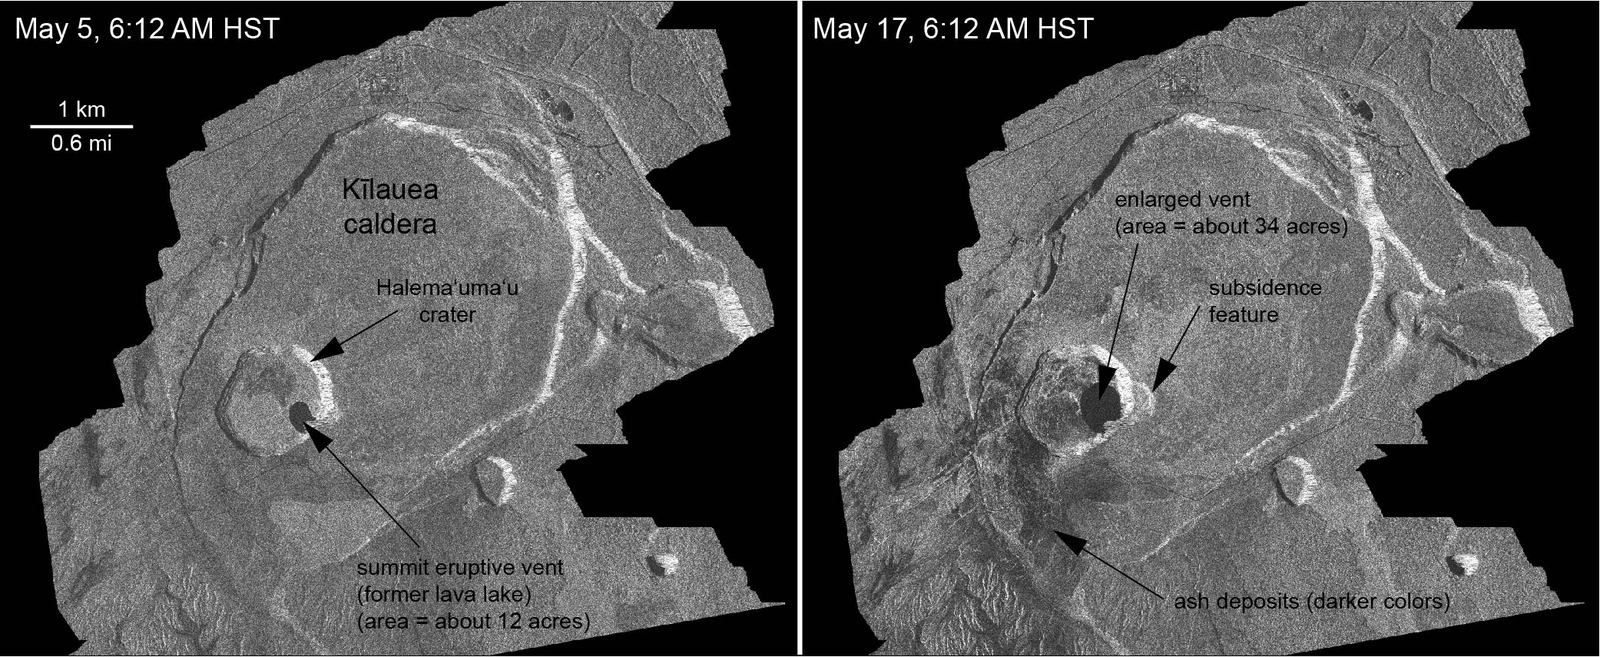 Kilauea - Radar images of the summit caldera and changes observed between May 5 and May 17, 2018, at 6:12 AM - doc. Italian Space Agency's Cosmo-SkyMed satellite system - one click to enlarge